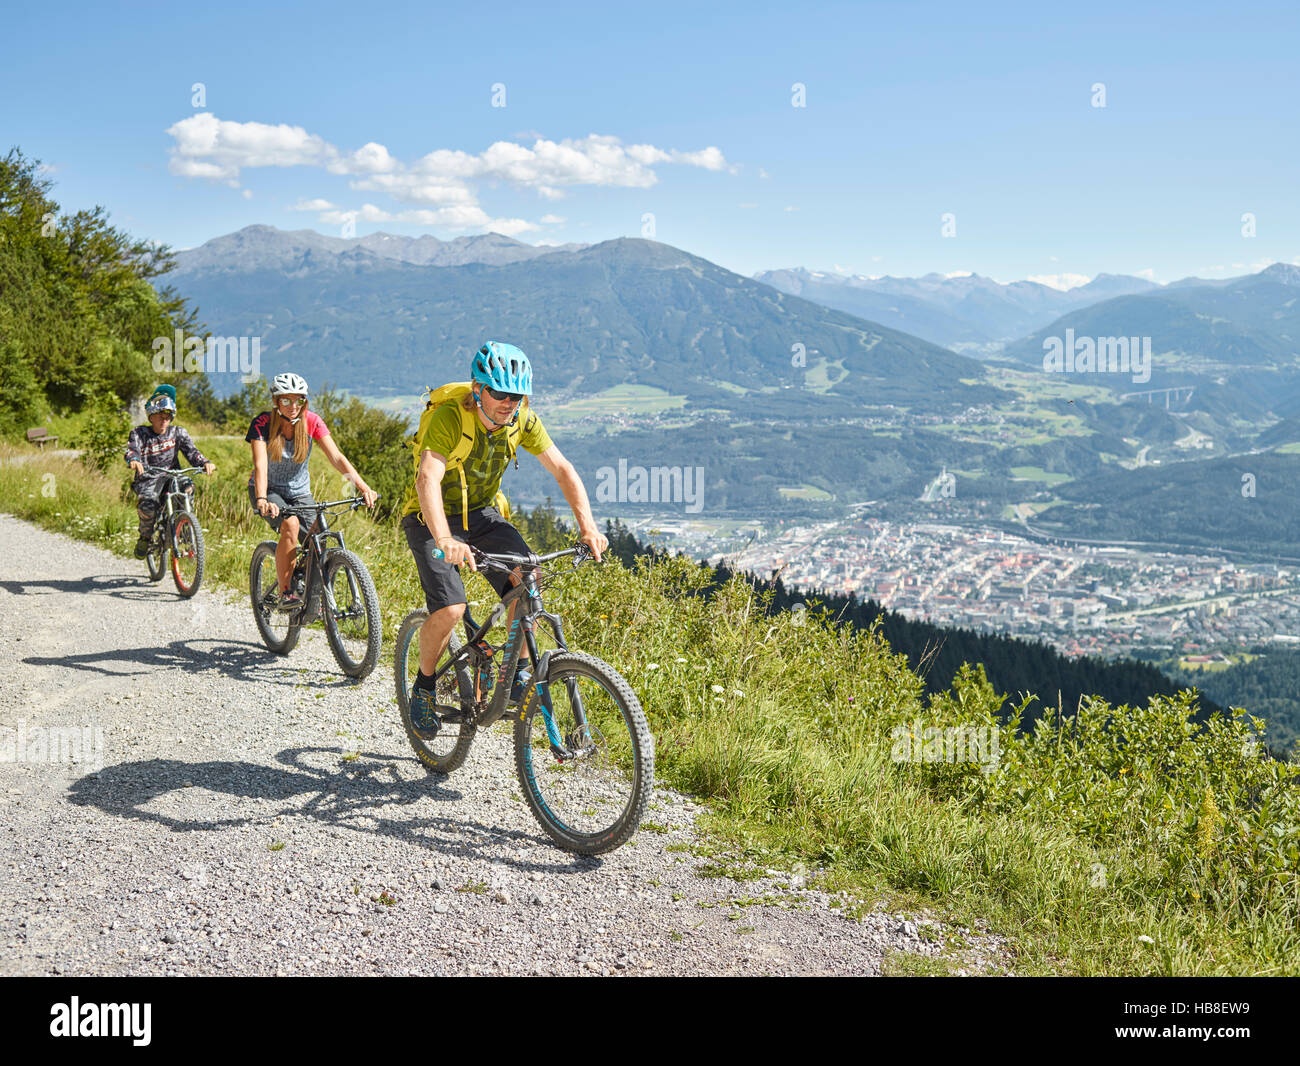 Family on mountain bikes, dirt road, Innsbruck behind, Inn Valley, Tyrol, Austria - Stock Image